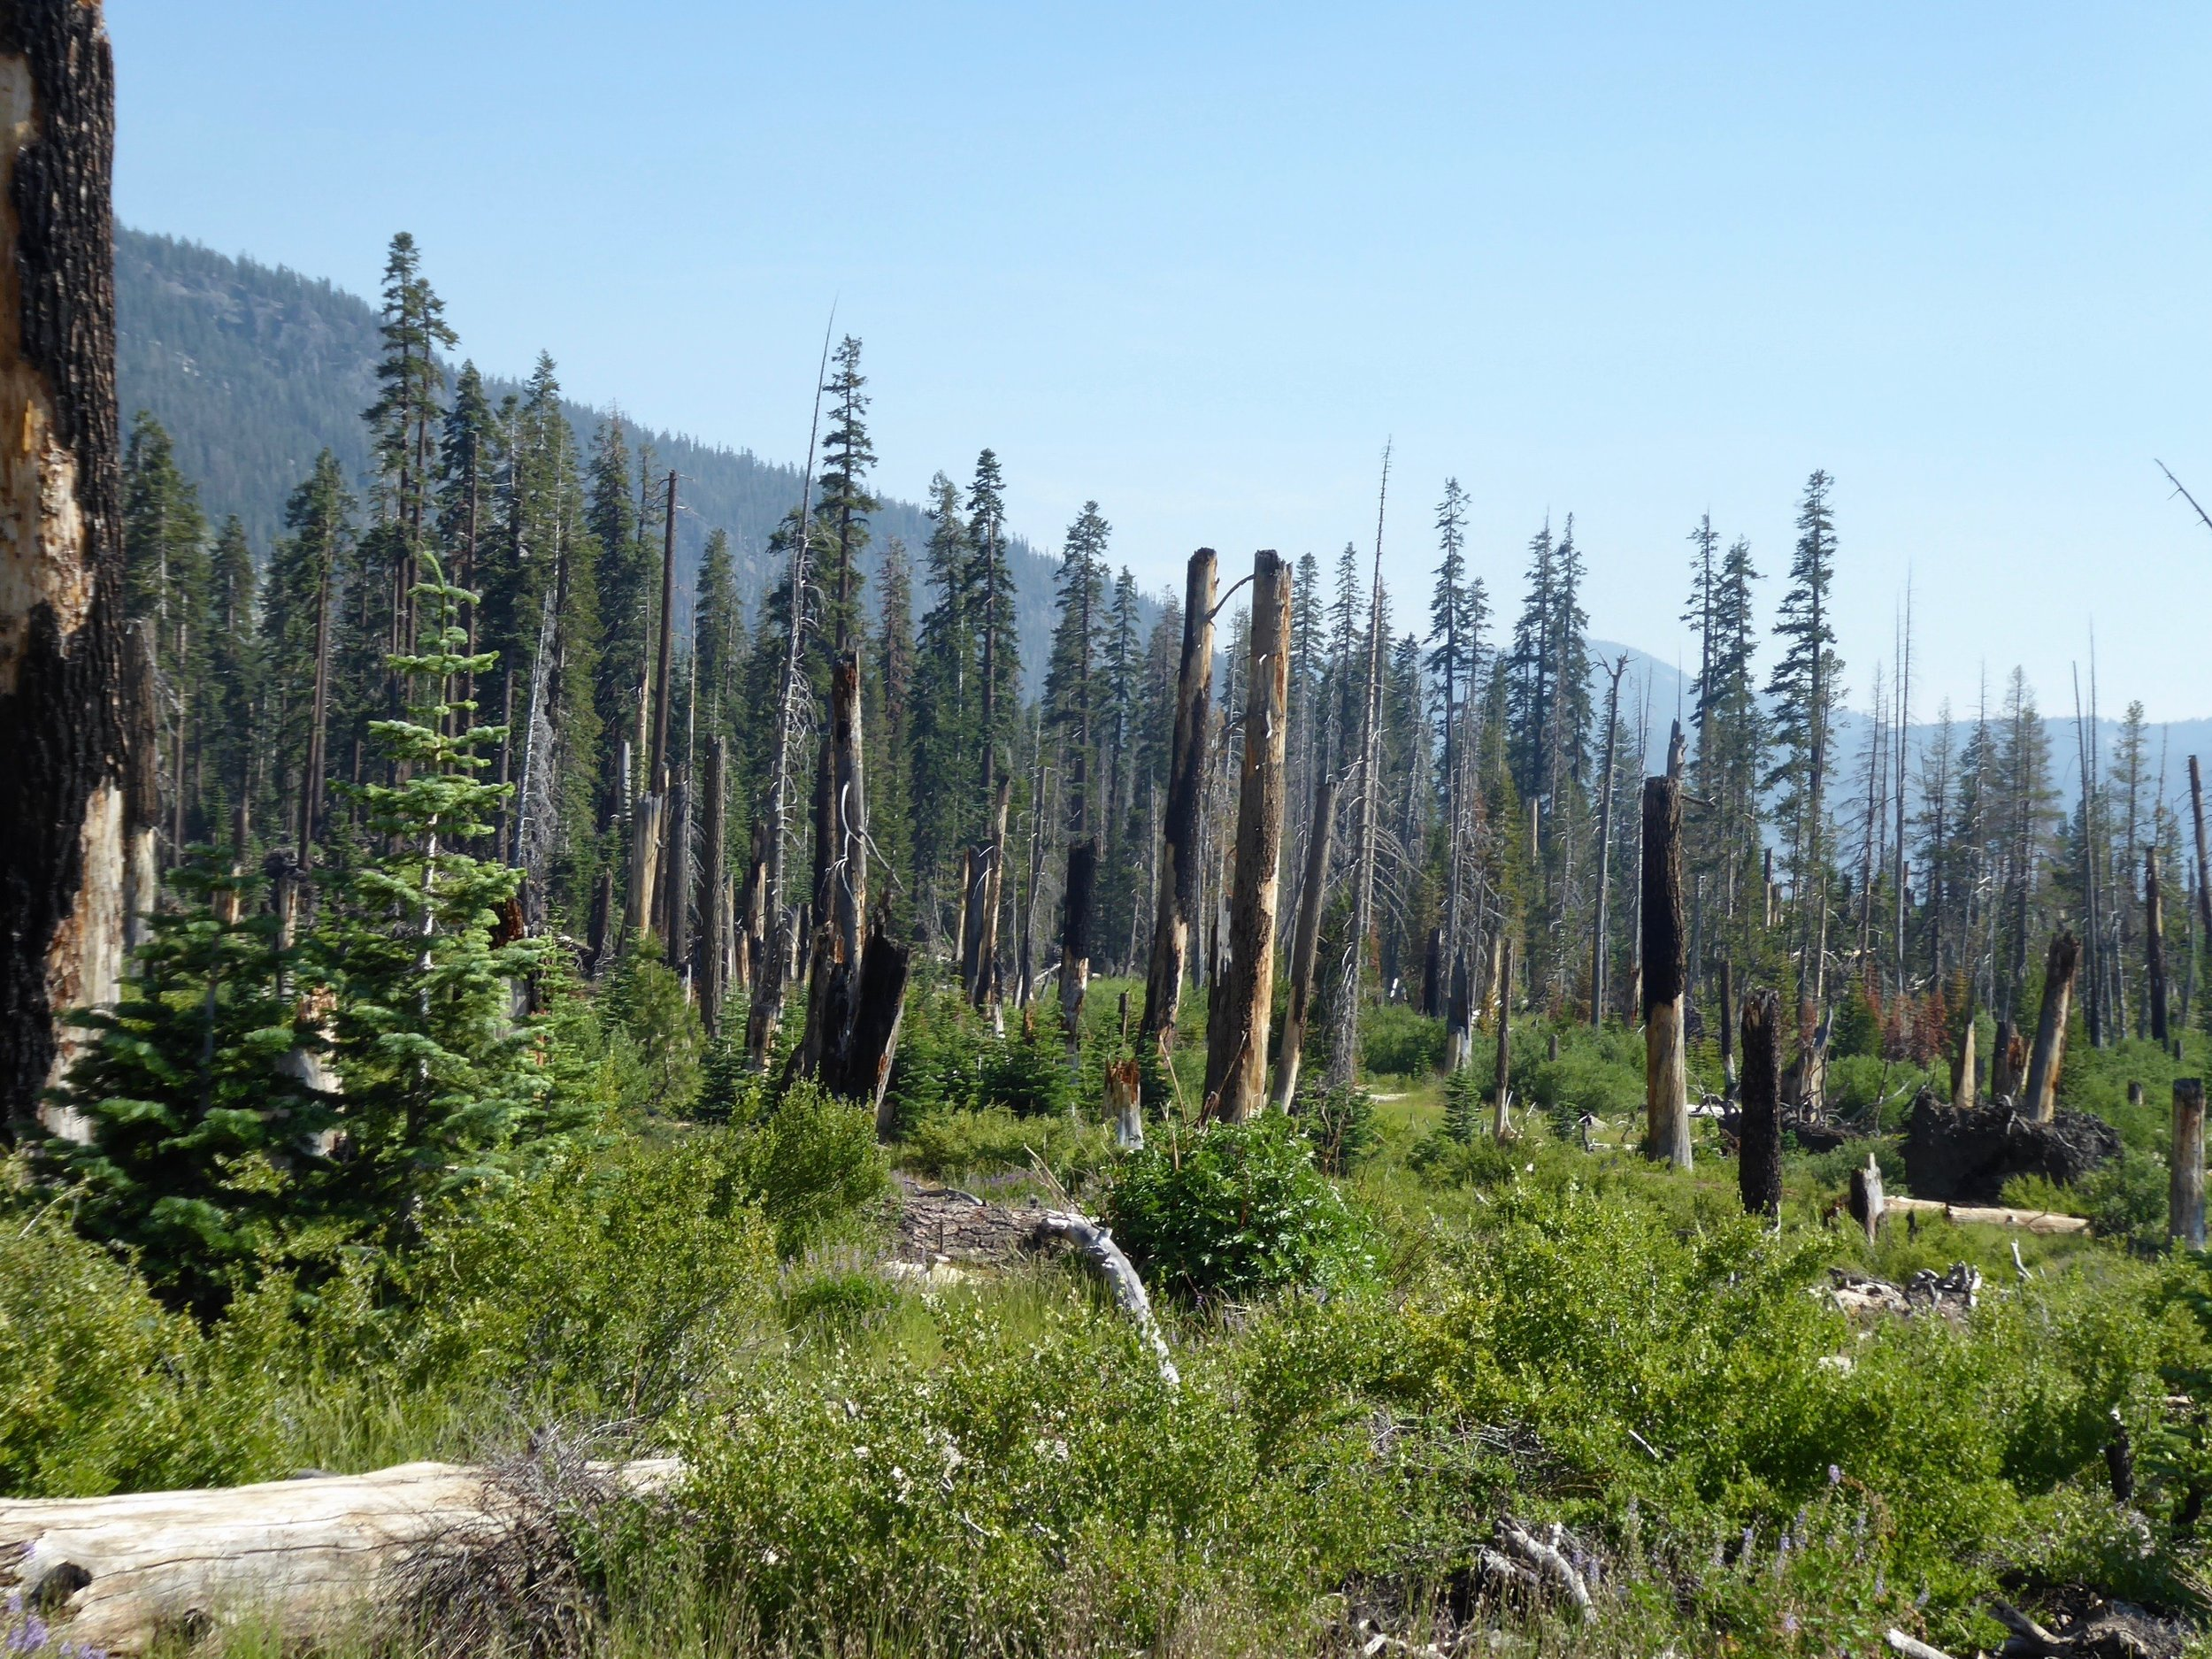 Even though the fire occurred in the 90's the burned trees were still standing.